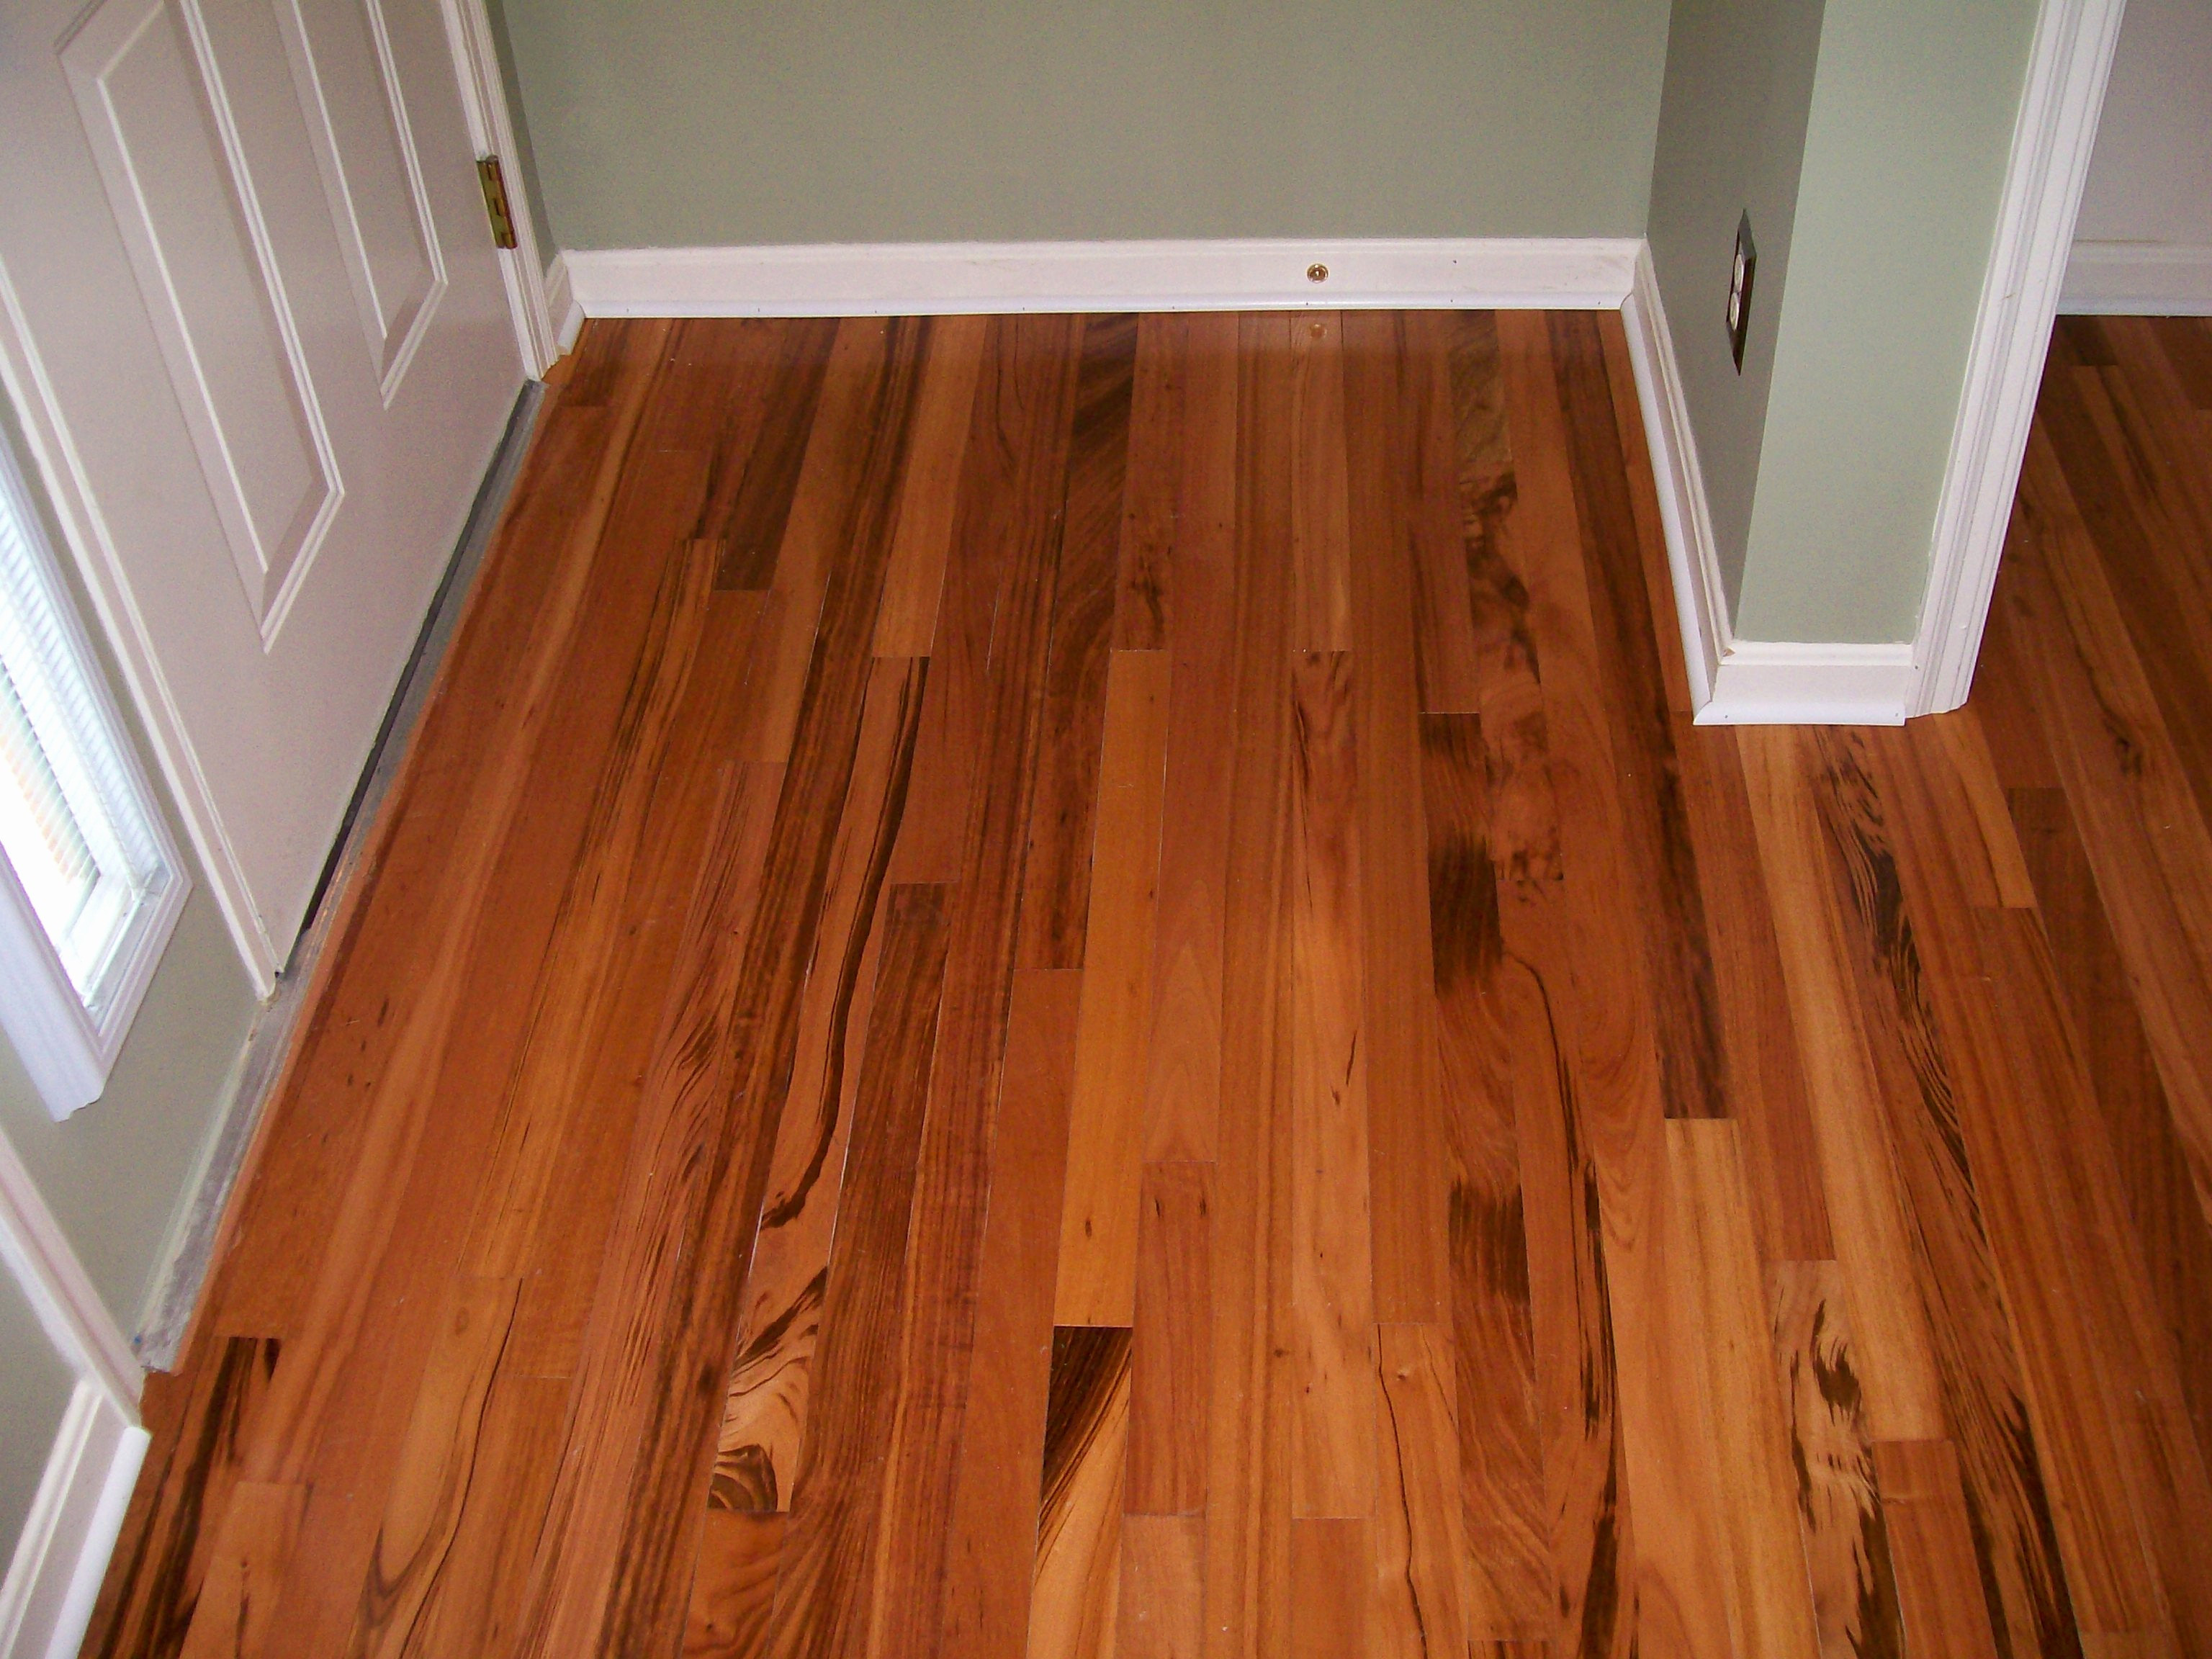 how do you install engineered hardwood floors on concrete of 17 new cost of hardwood floor installation pics dizpos com in cost of hardwood floor installation new 50 fresh estimated cost installing hardwood floors 50 photos of